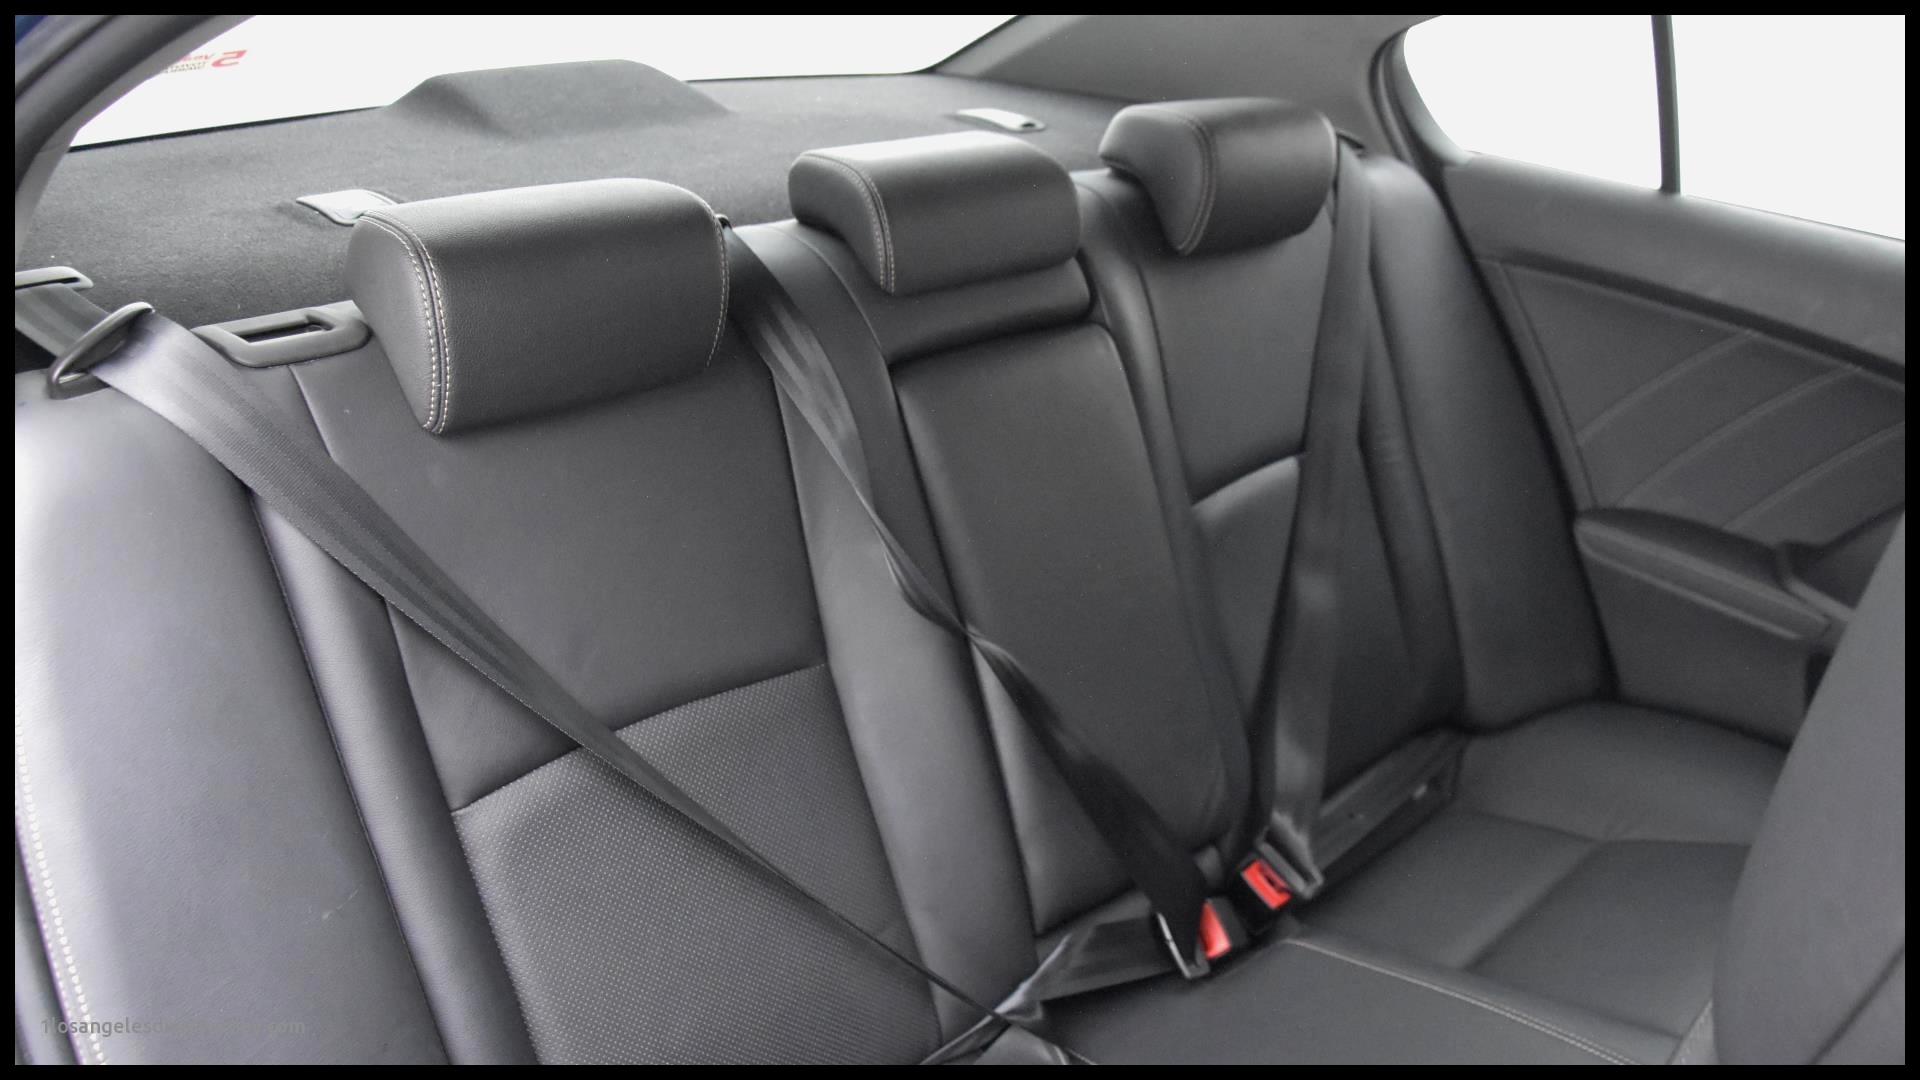 Hot How to Make Car Seat Covers Inspirational Used toyota Avensis 2 0d Price